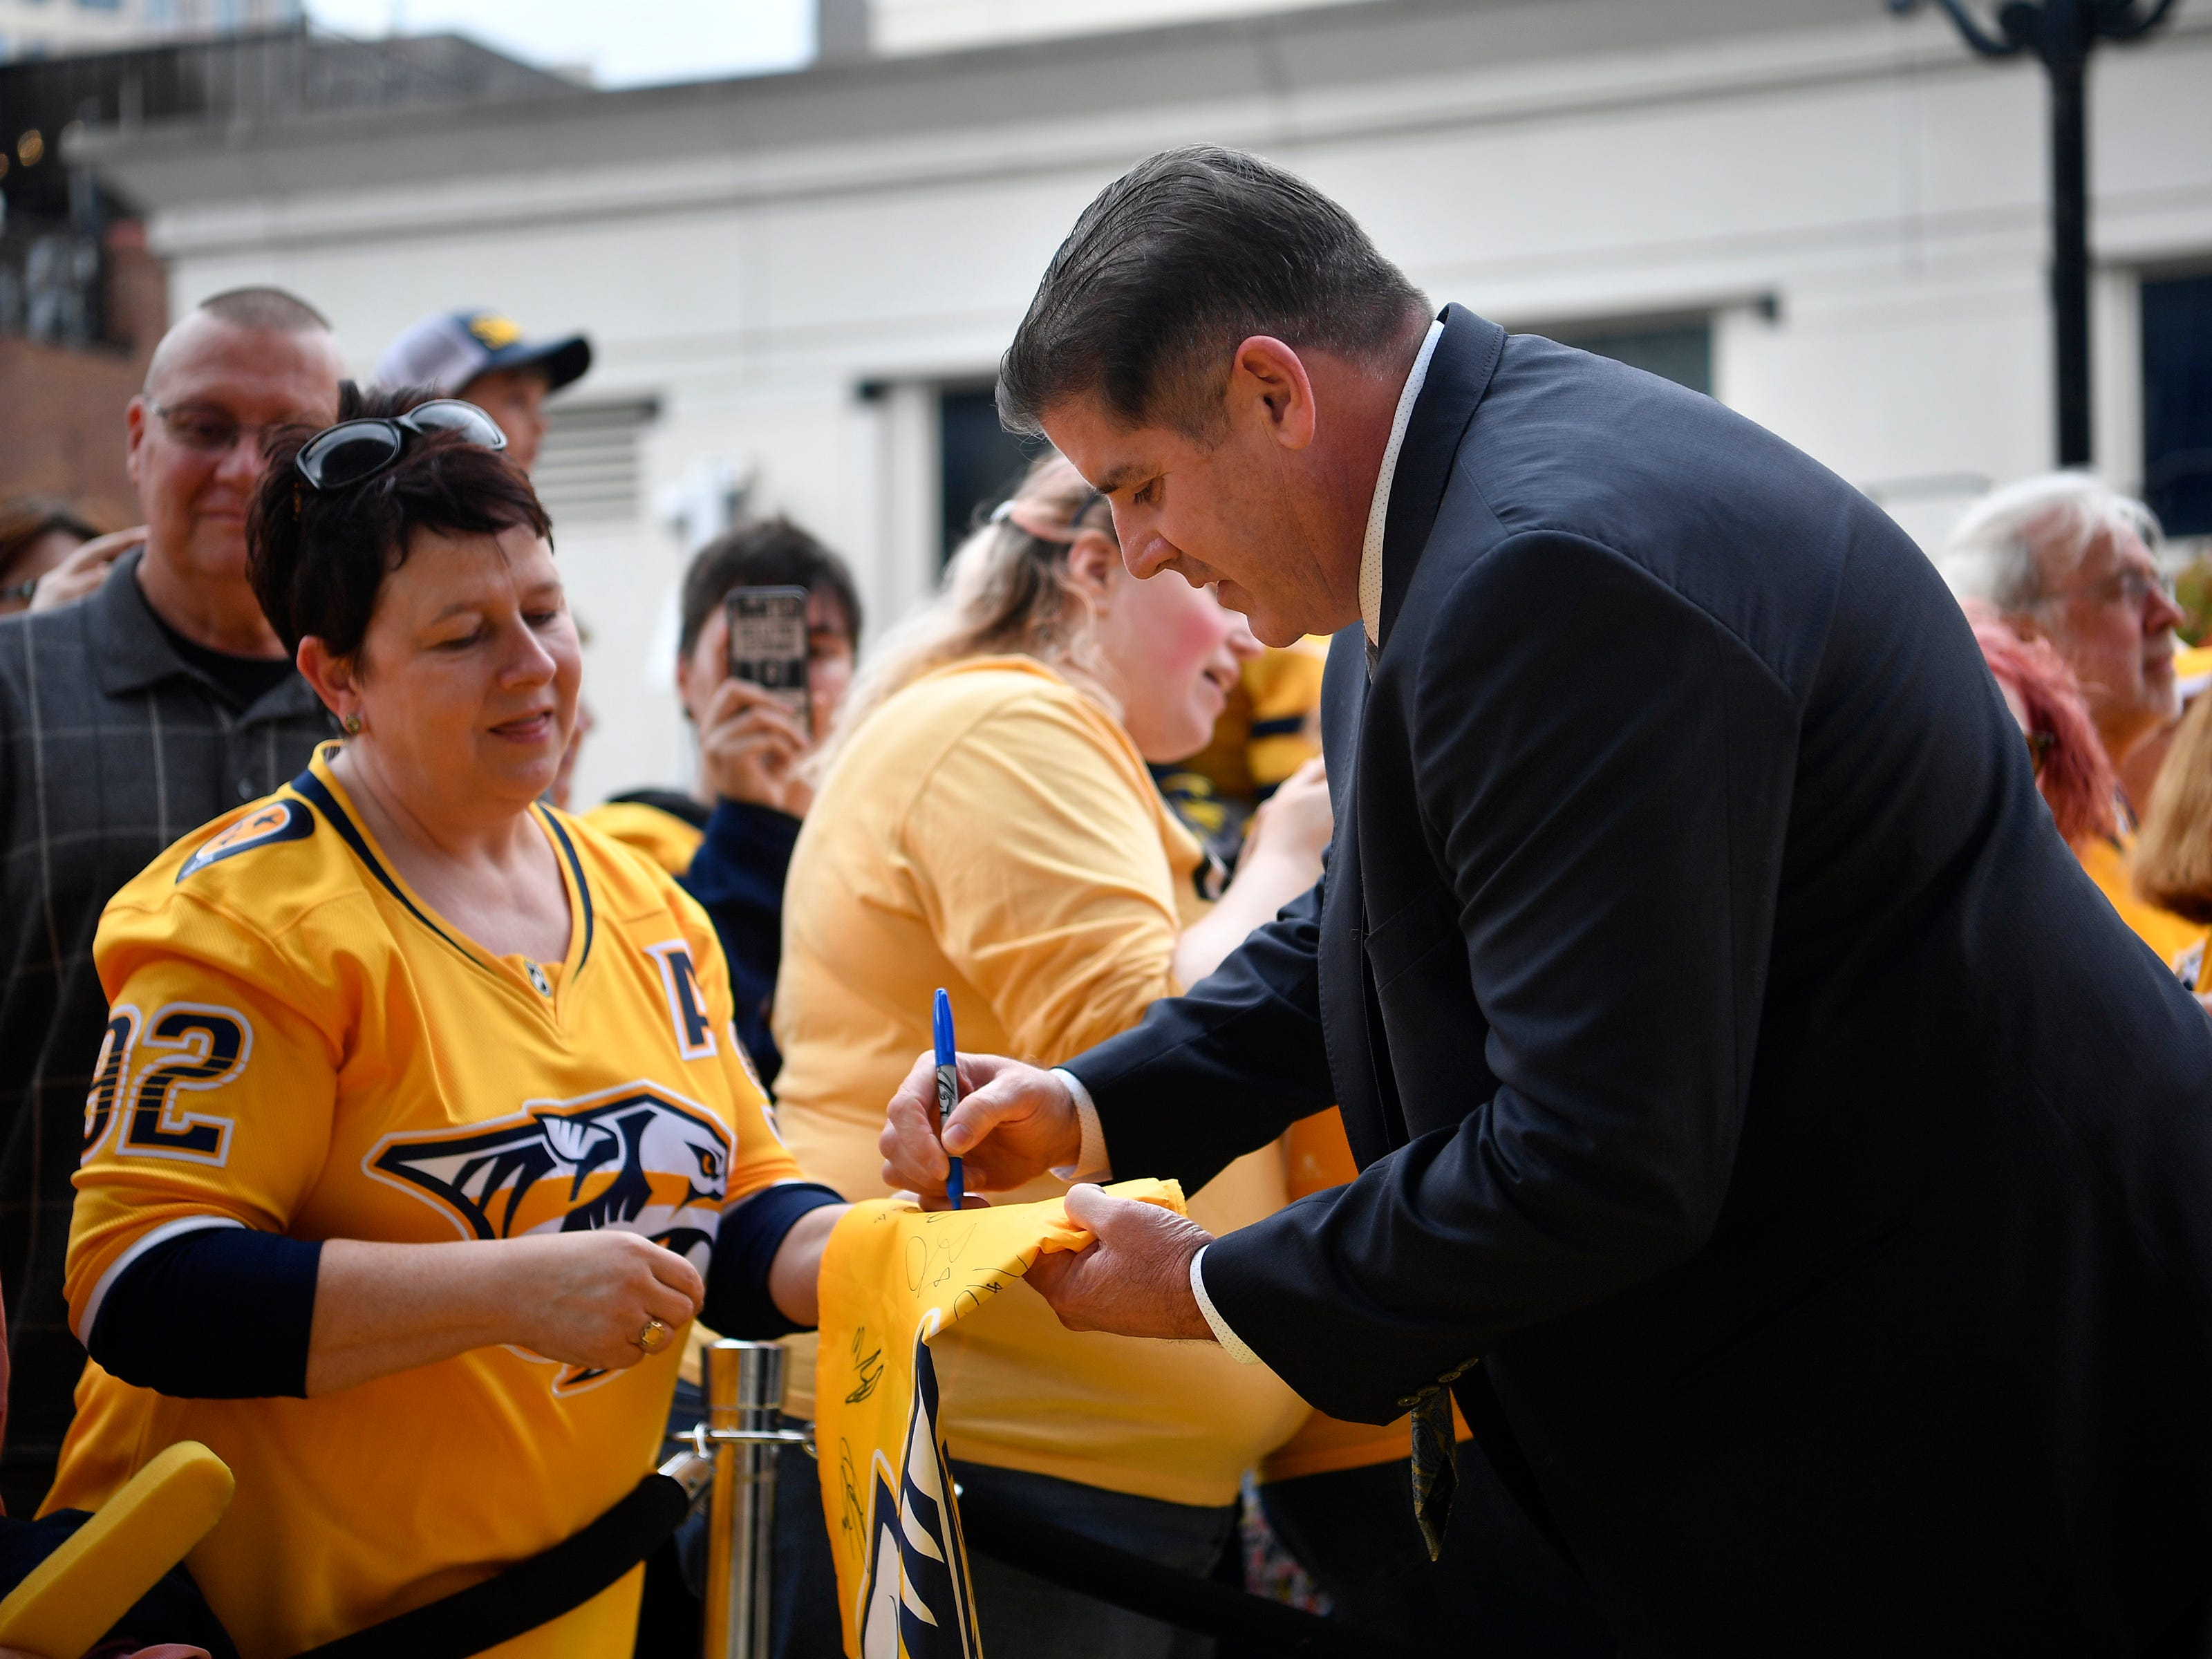 Predators head coach Peter Laviolette signs an autograph on the Gold Walk before the home opener at Bridgestone Arena in Nashville, Tenn., Tuesday, Oct. 9, 2018.